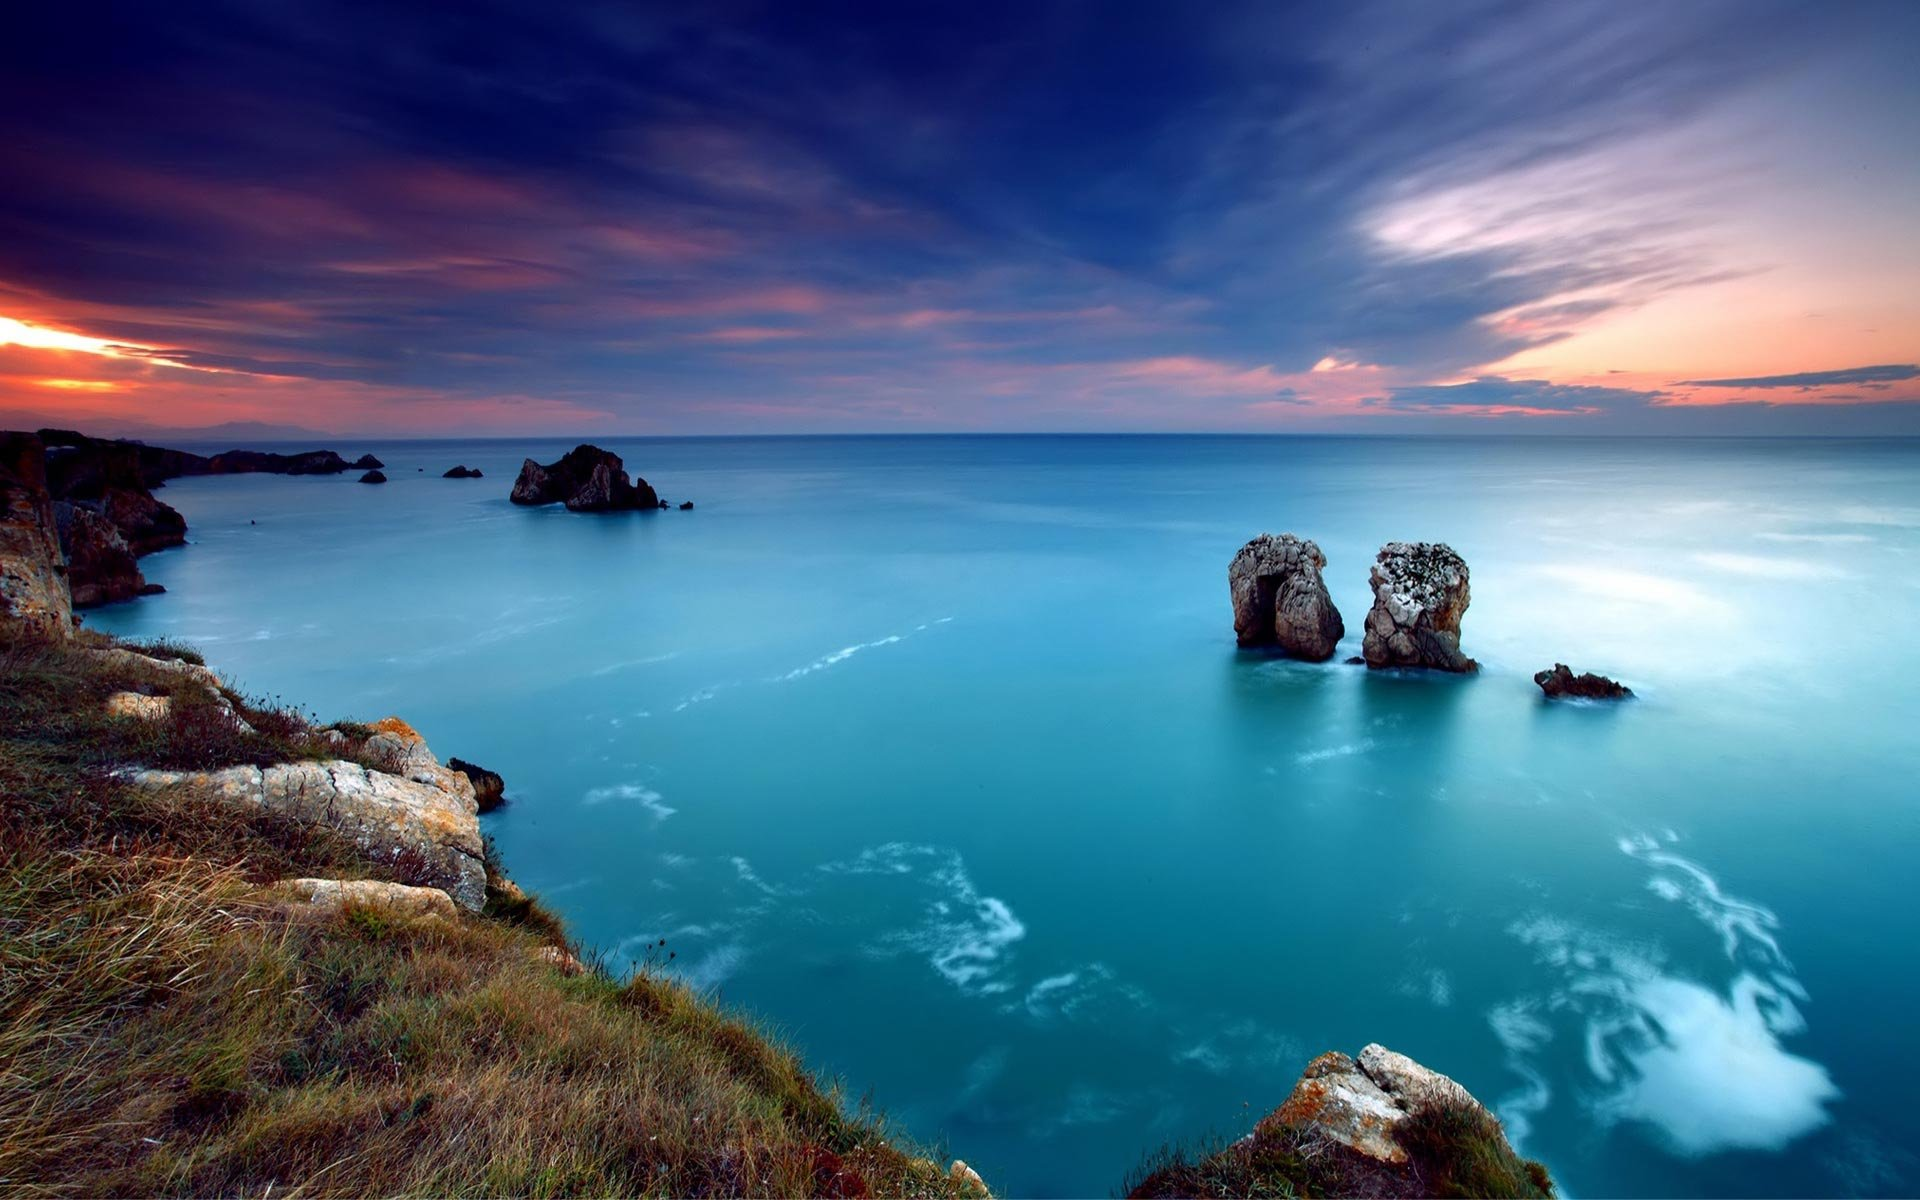 Awesome Ocean View HD wallpaper 1920x1200